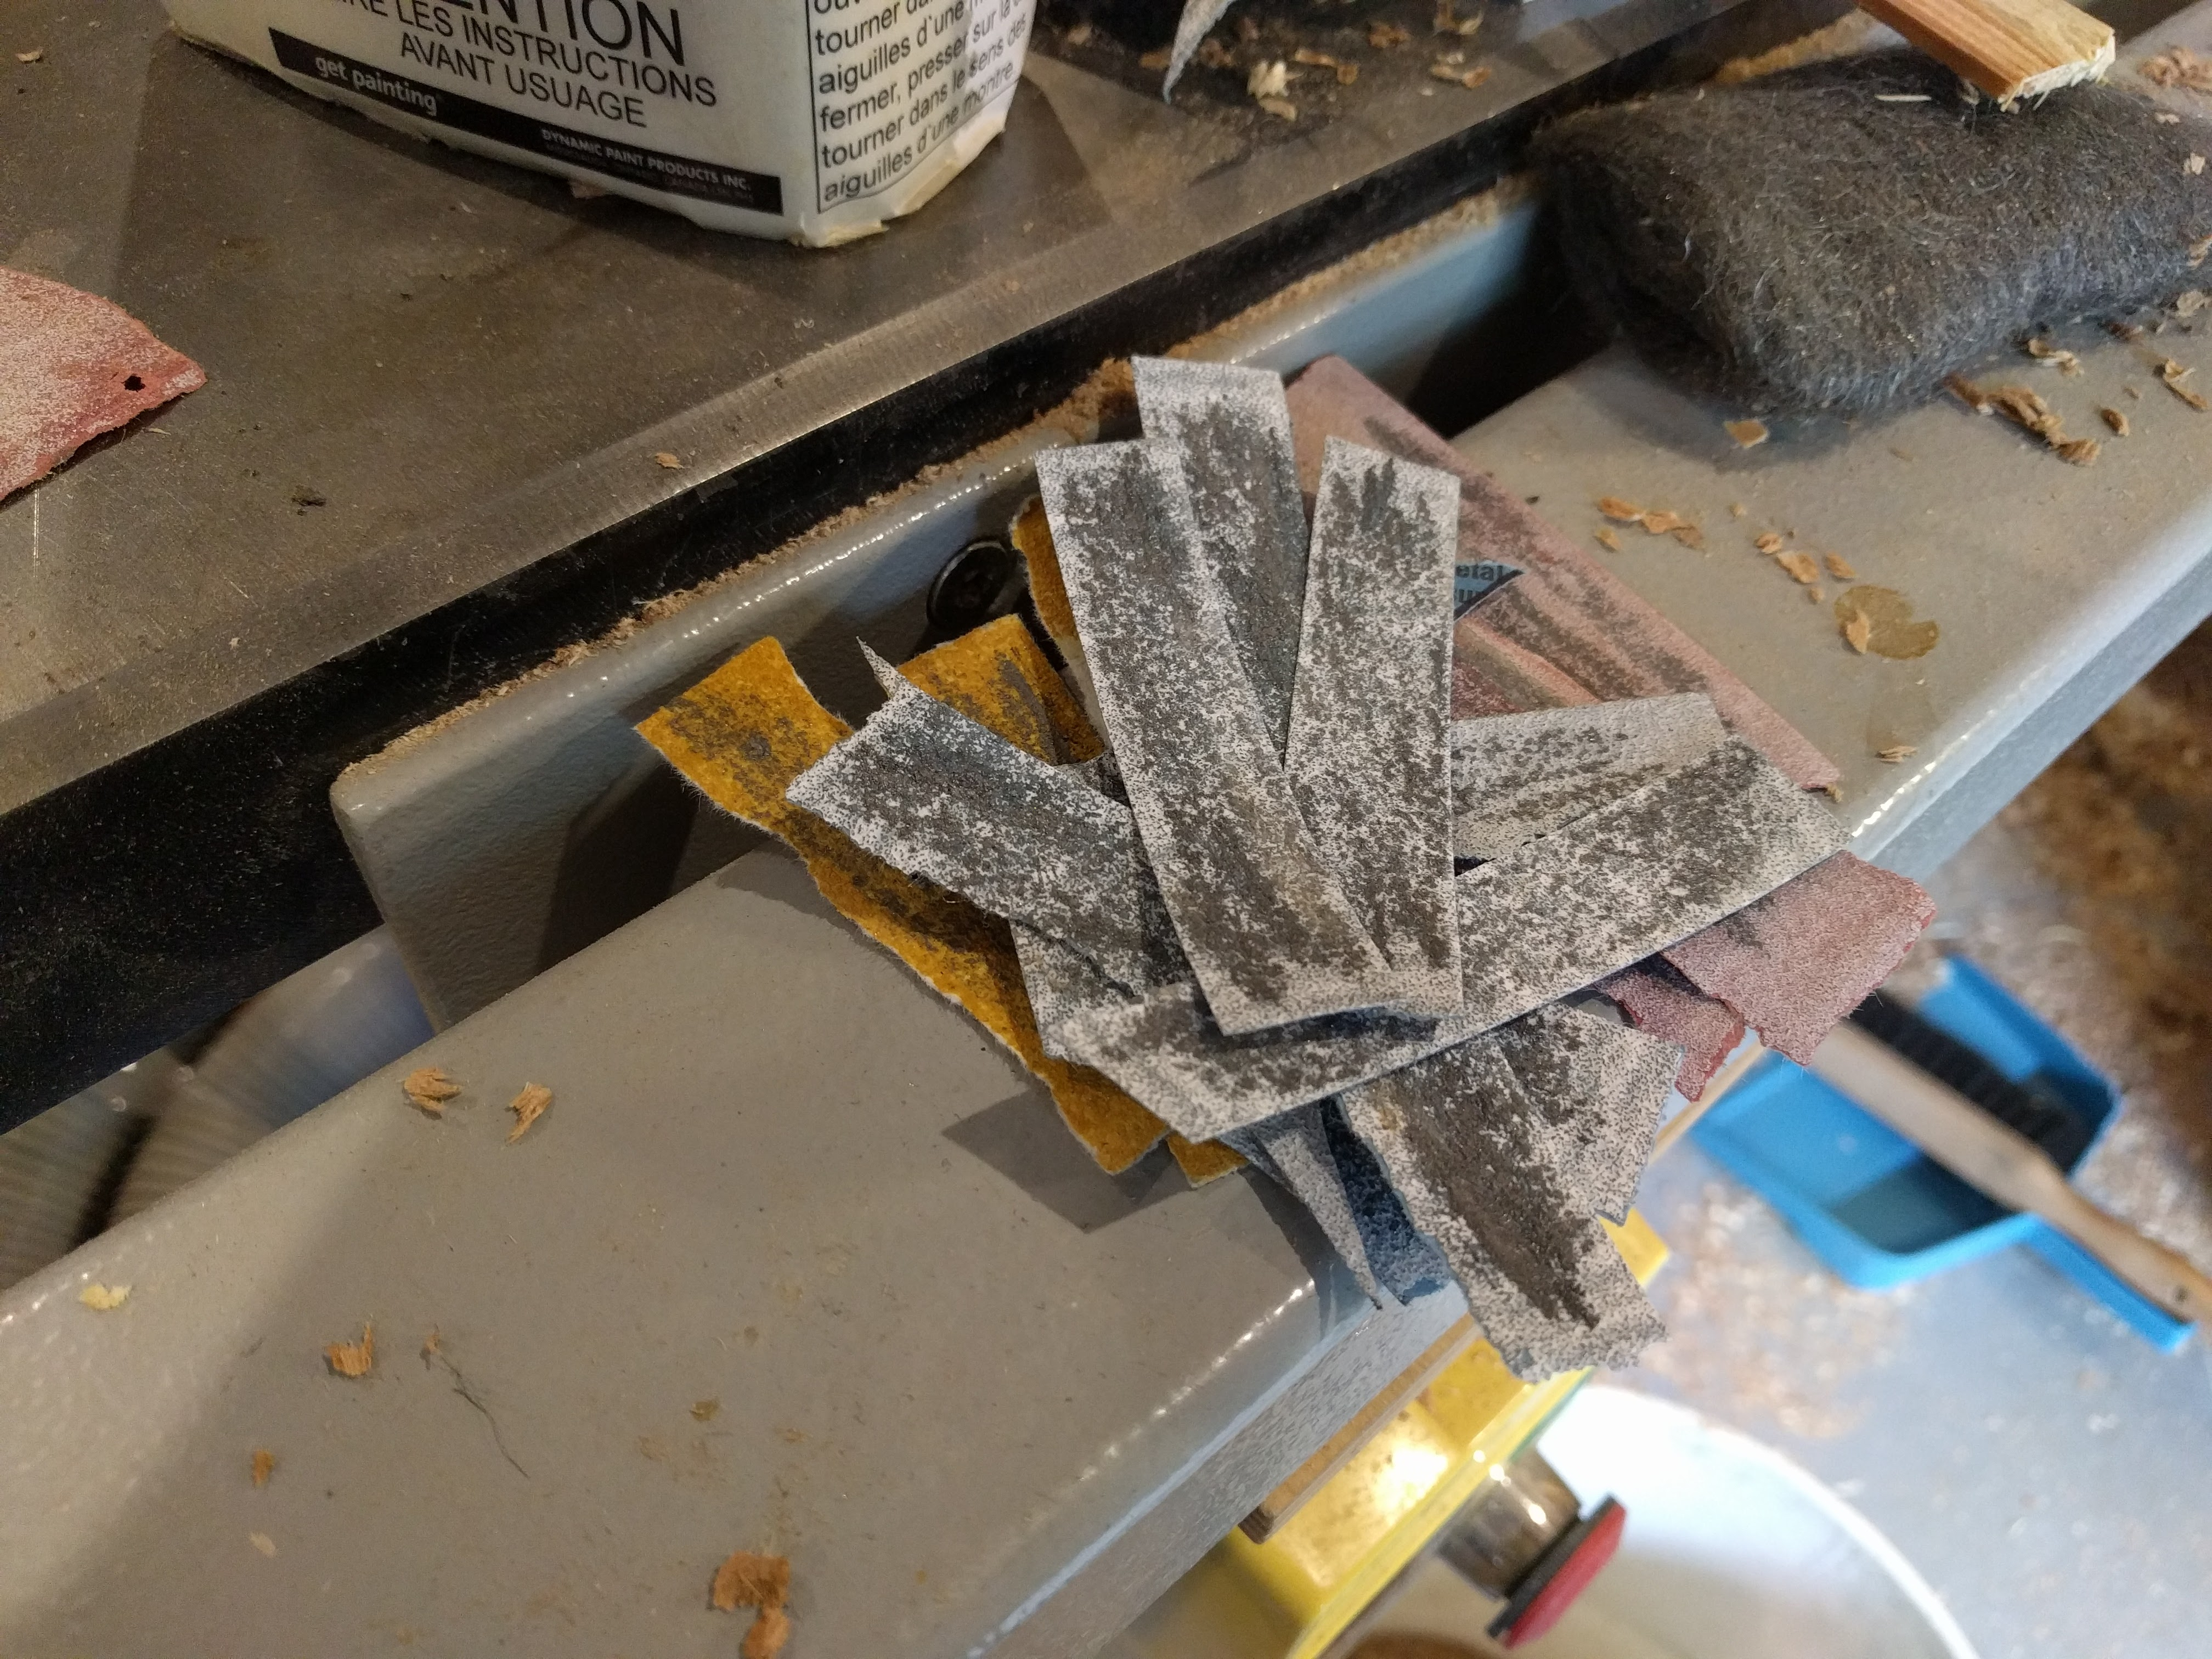 Sandpaper strips used to shape the stainless steel part.